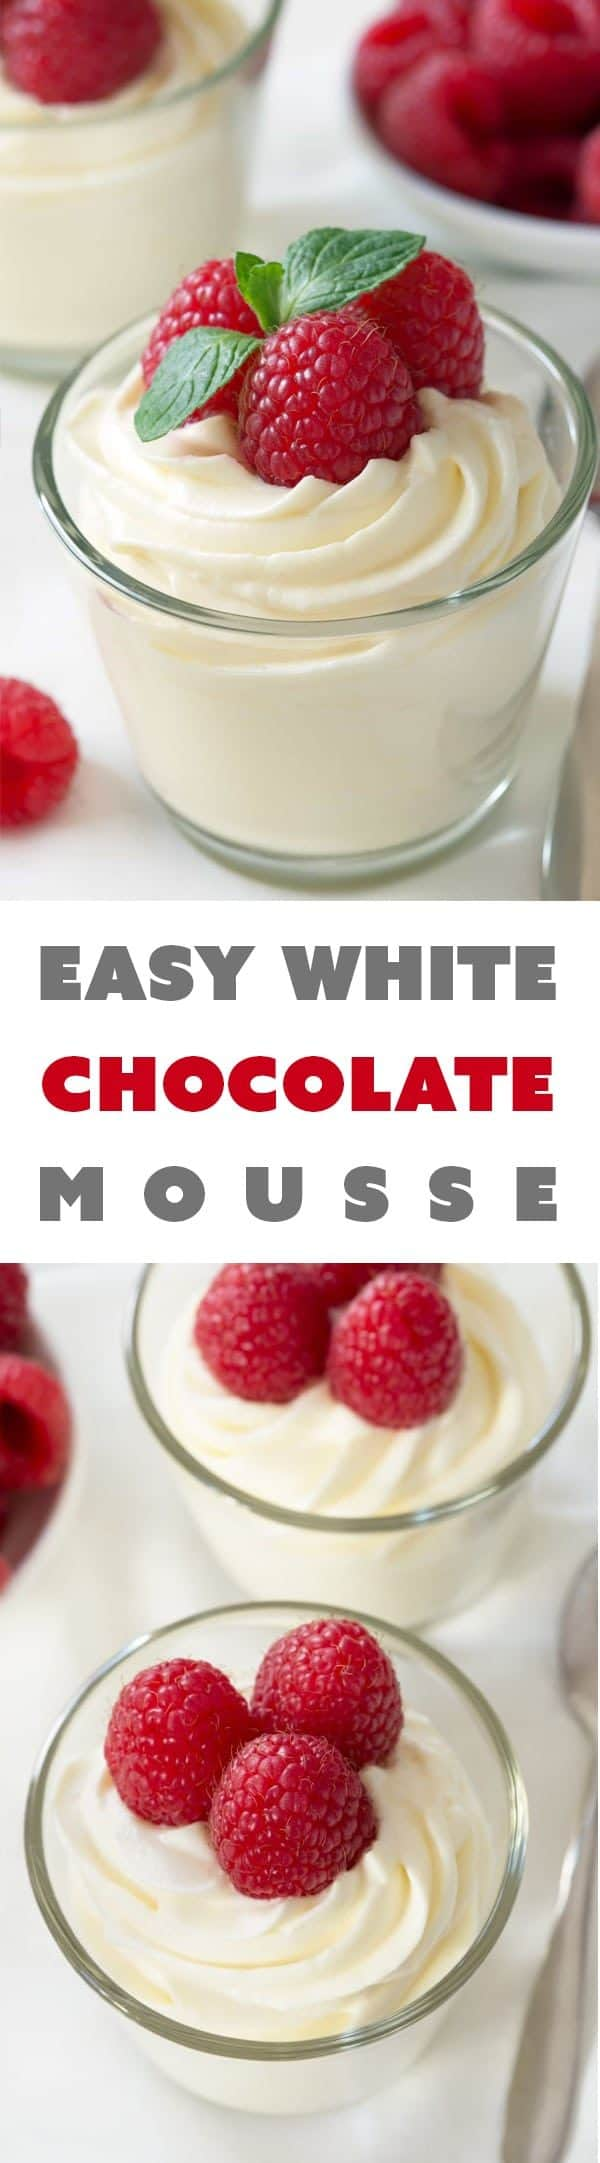 Easy White Chocolate Mousse - My Baking Addiction